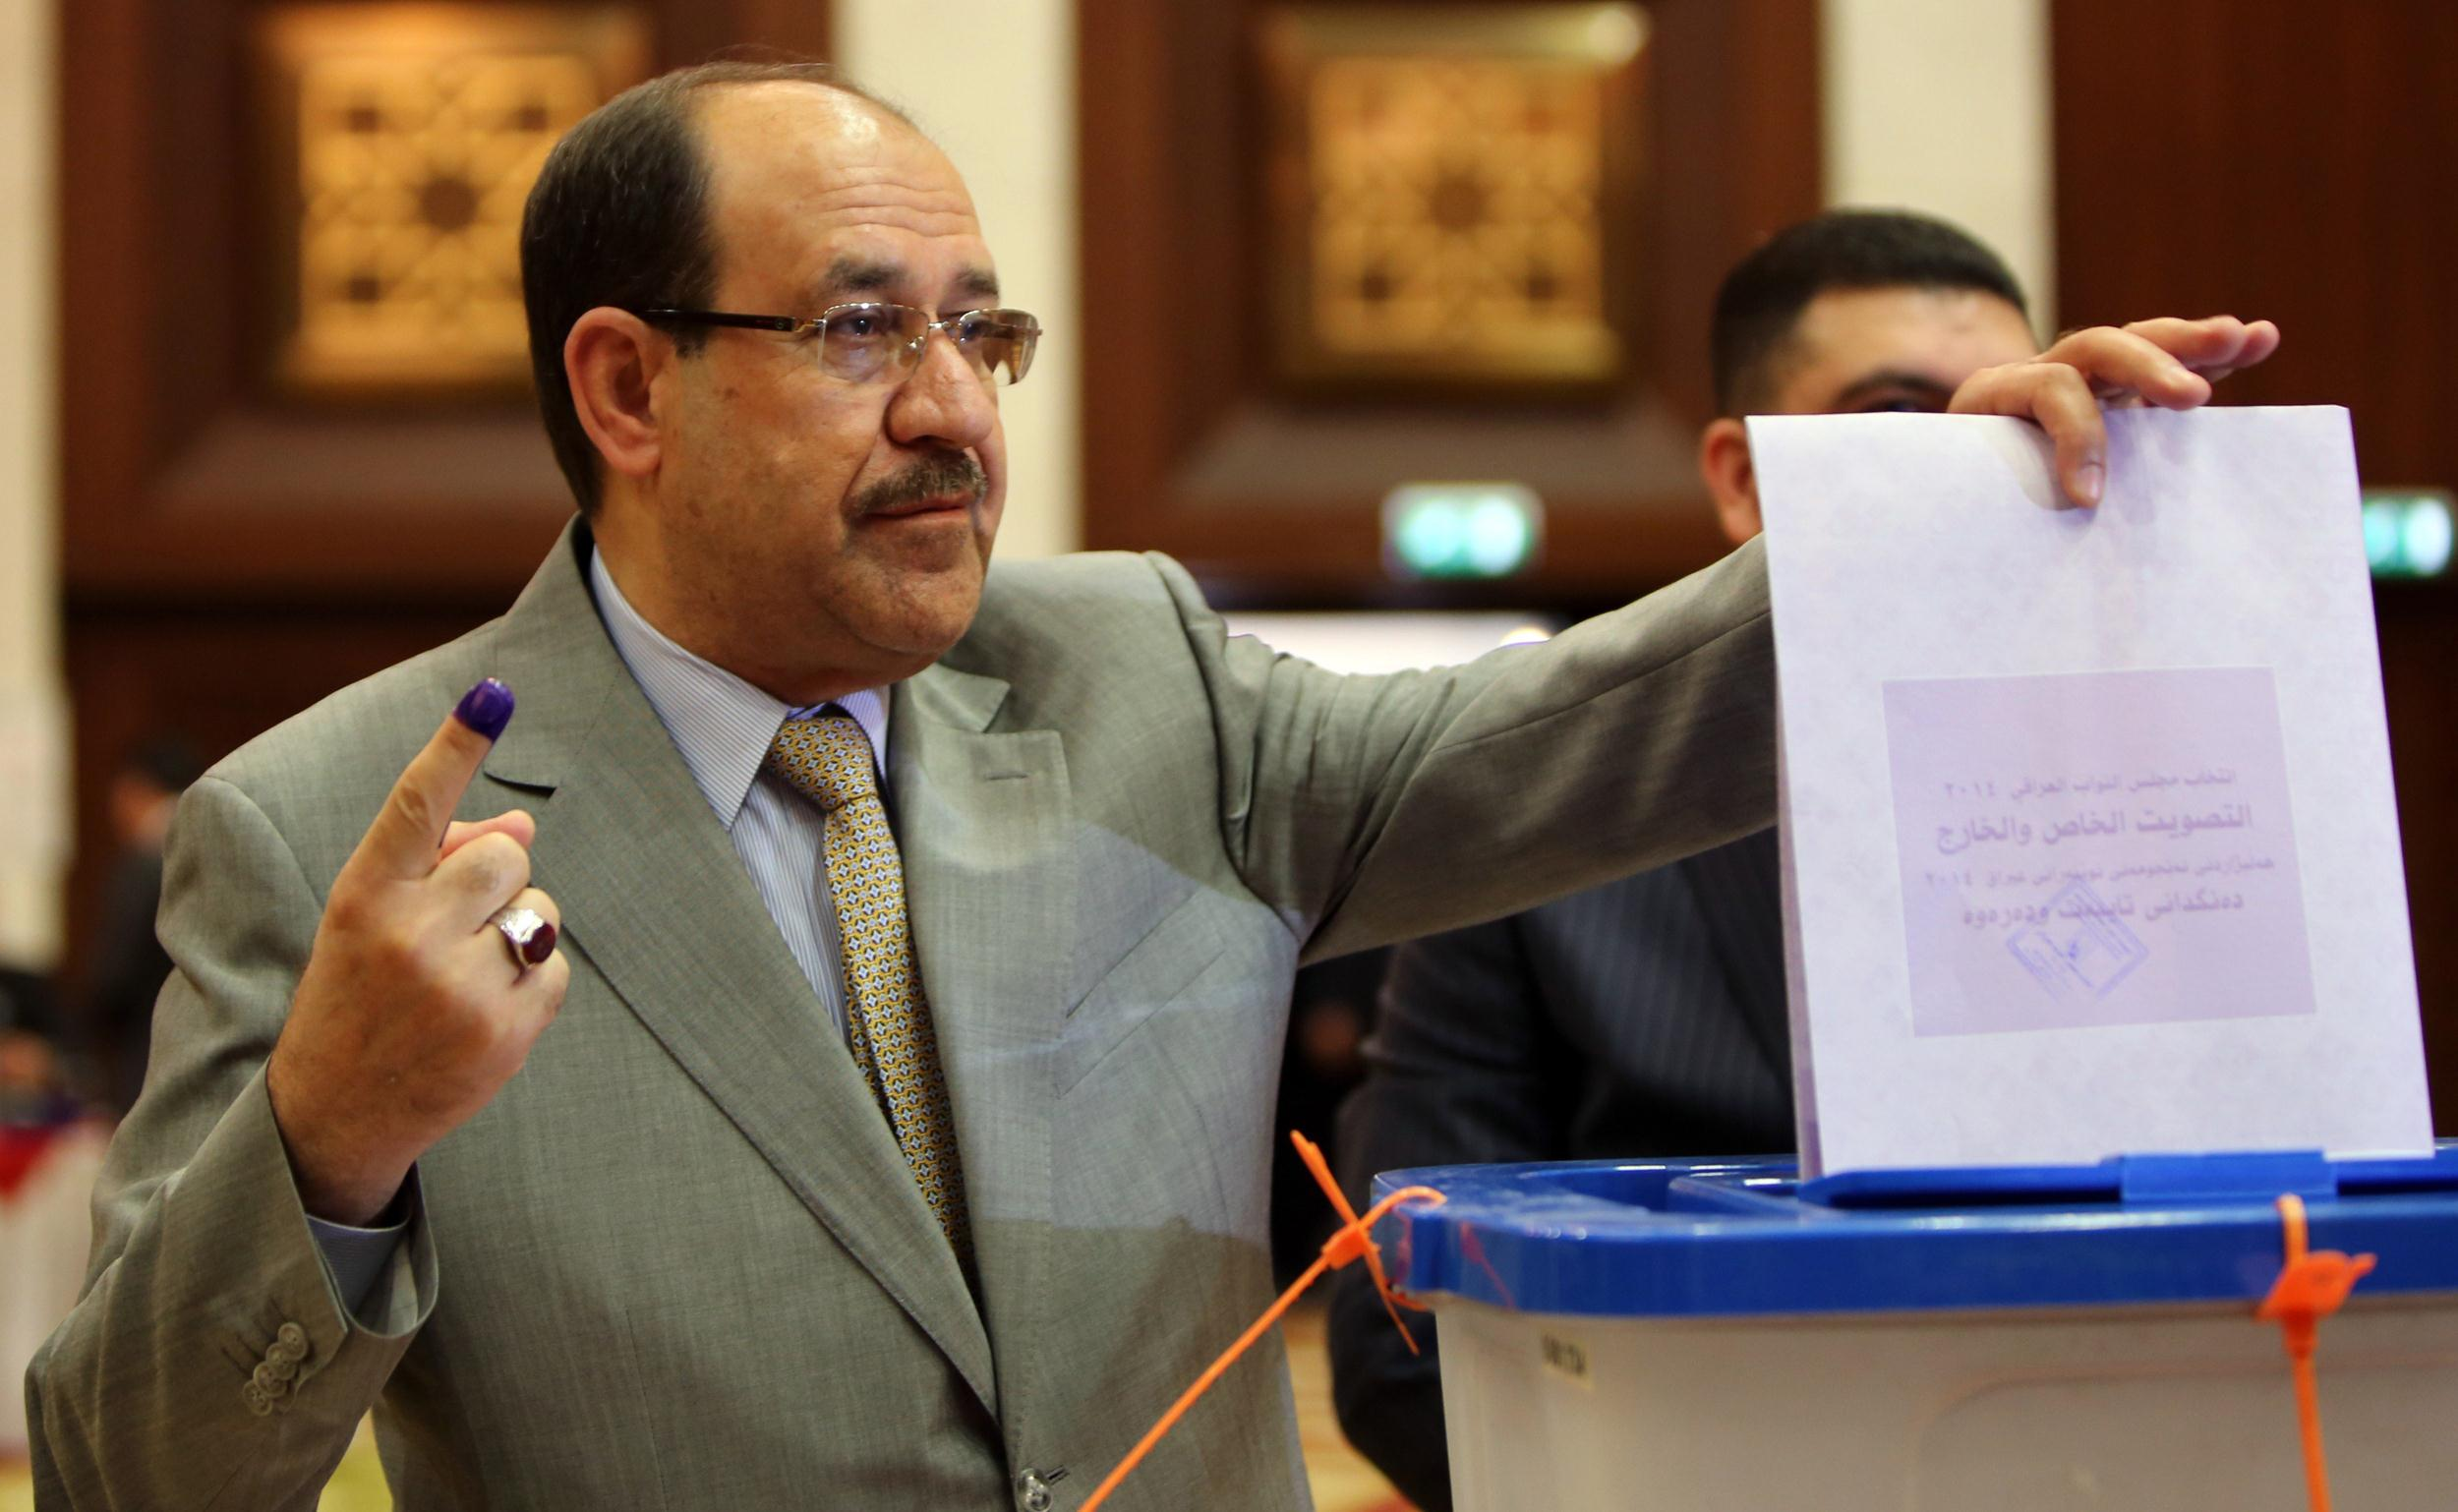 Image: Iraqi Prime Minister Nouri al-Maliki shows his ink-stained finger as he casts his vote